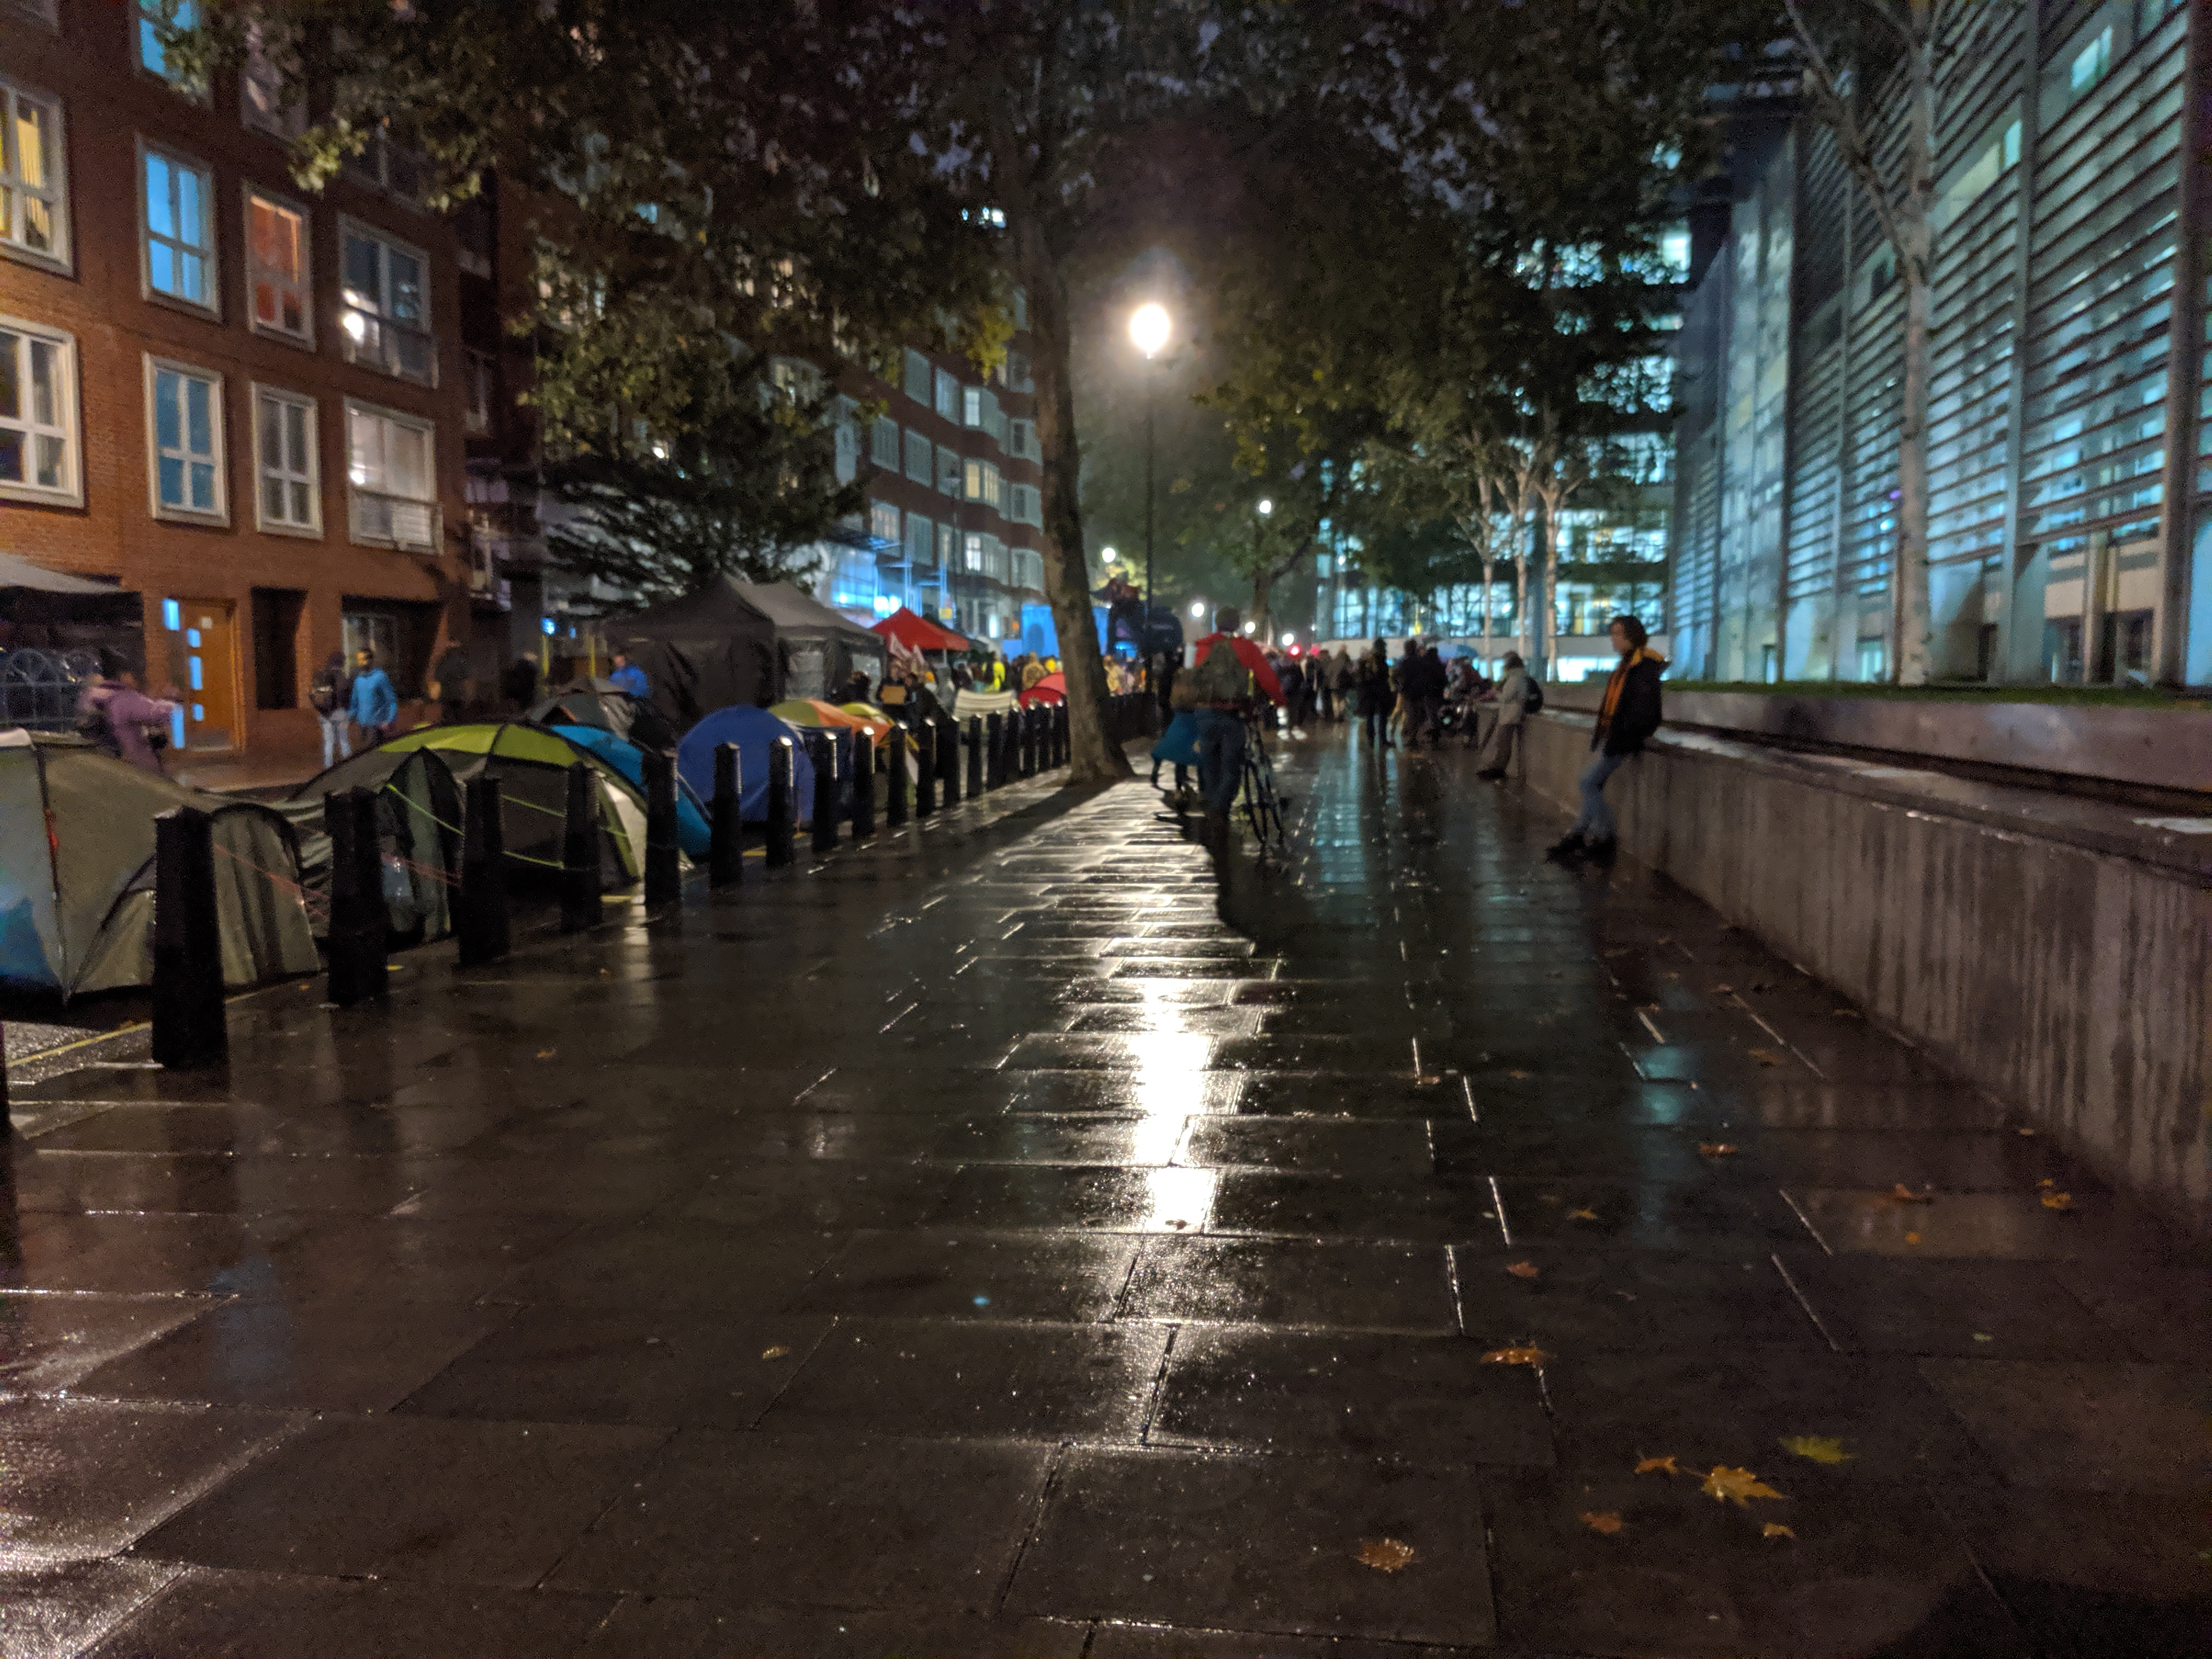 Extinction Rebellion settling in for the night. Streetlight reflected off the rainy pavement with tents set up along Marsham Street. Entertainment in front of the main entrance to the Home Office building. (photo: James Kemp)